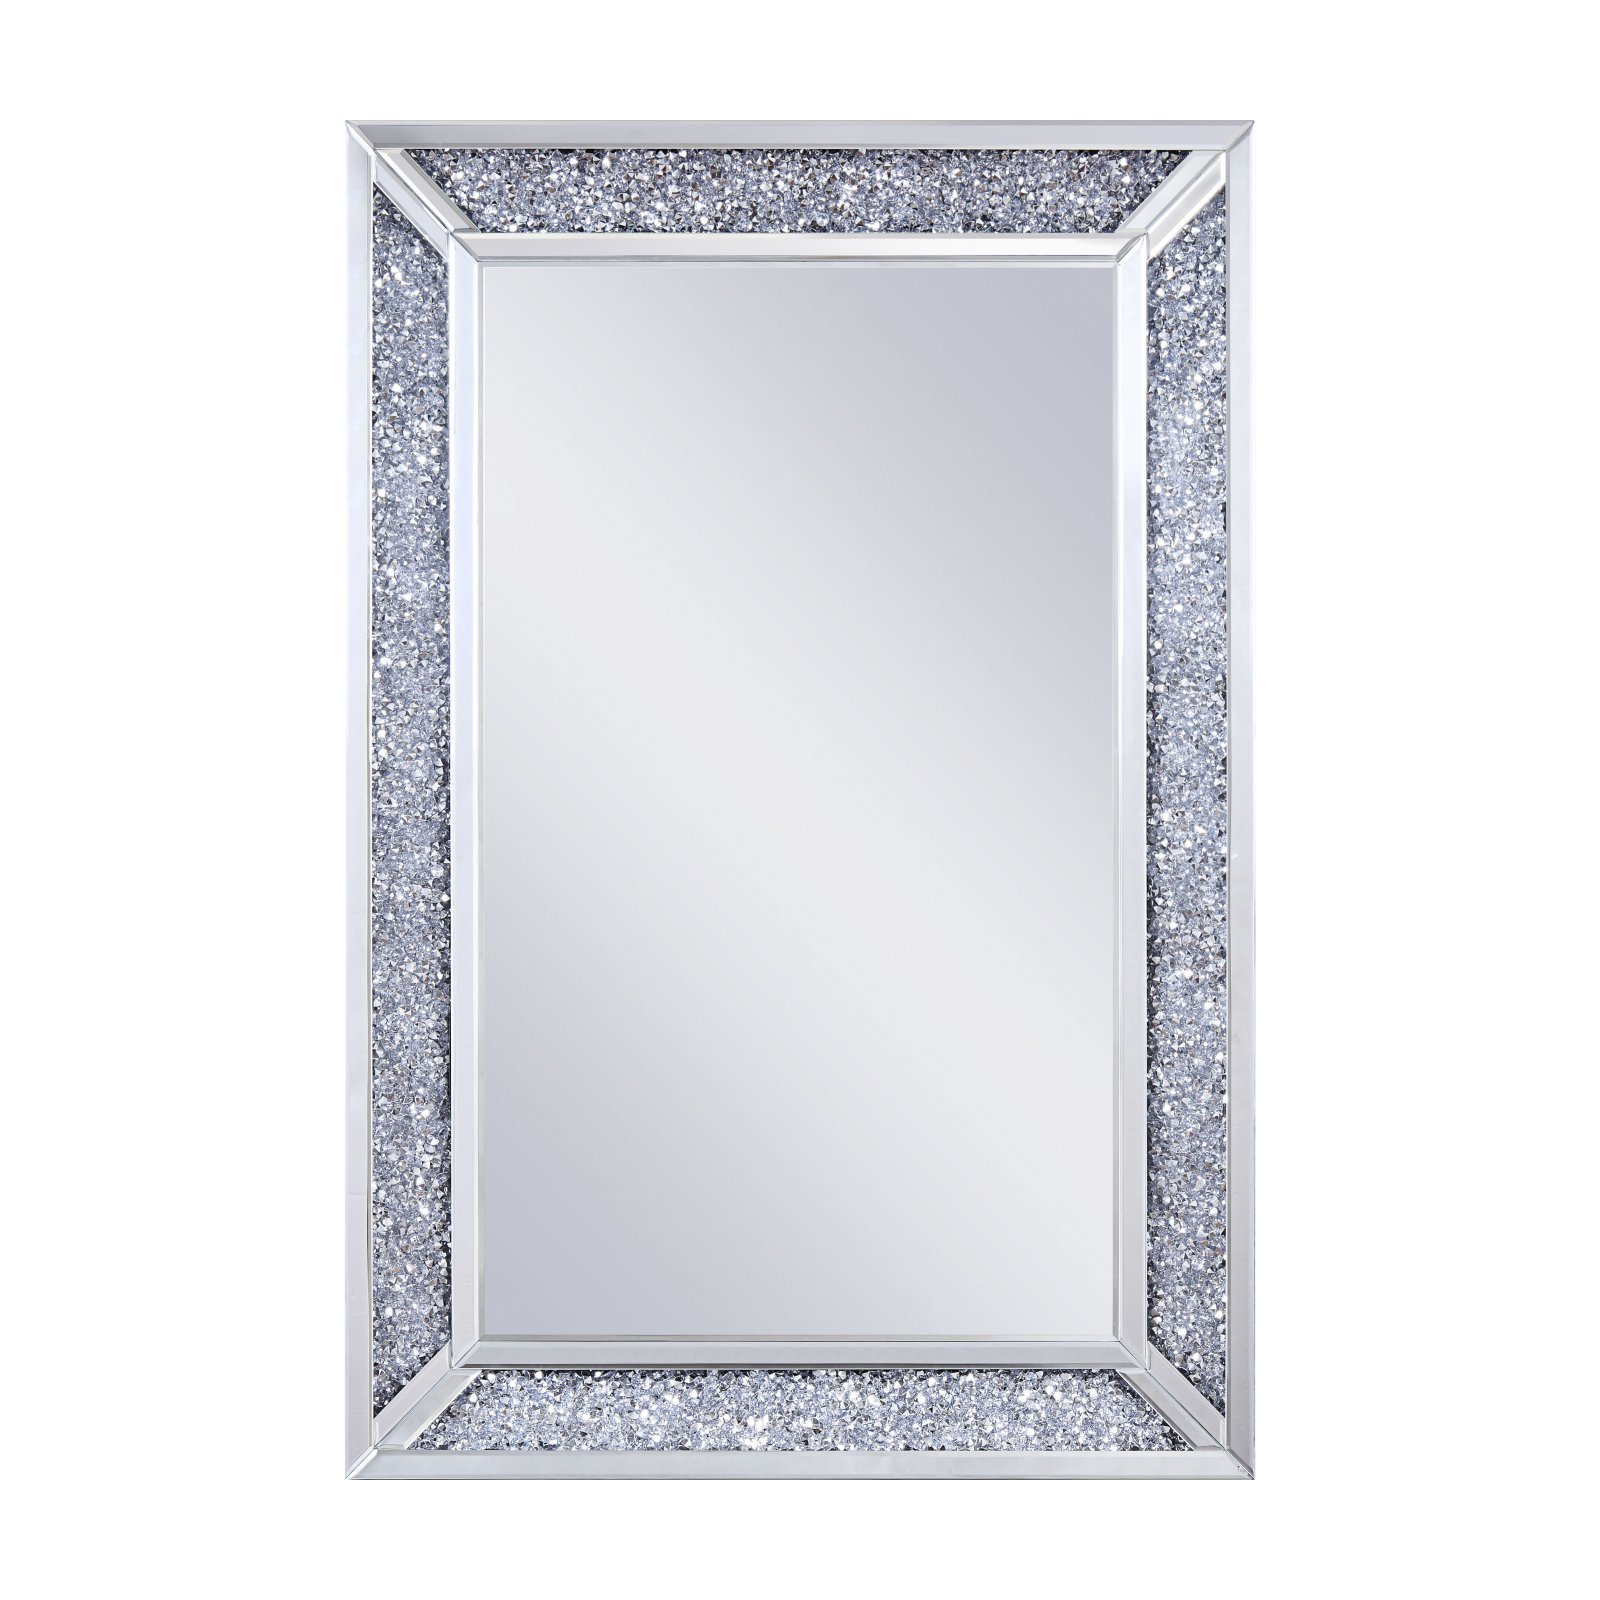 Acme Furniture Noralie Rectangular Wall Mirror - 31W X 47H for Longwood Rustic Beveled Accent Mirrors (Image 1 of 30)